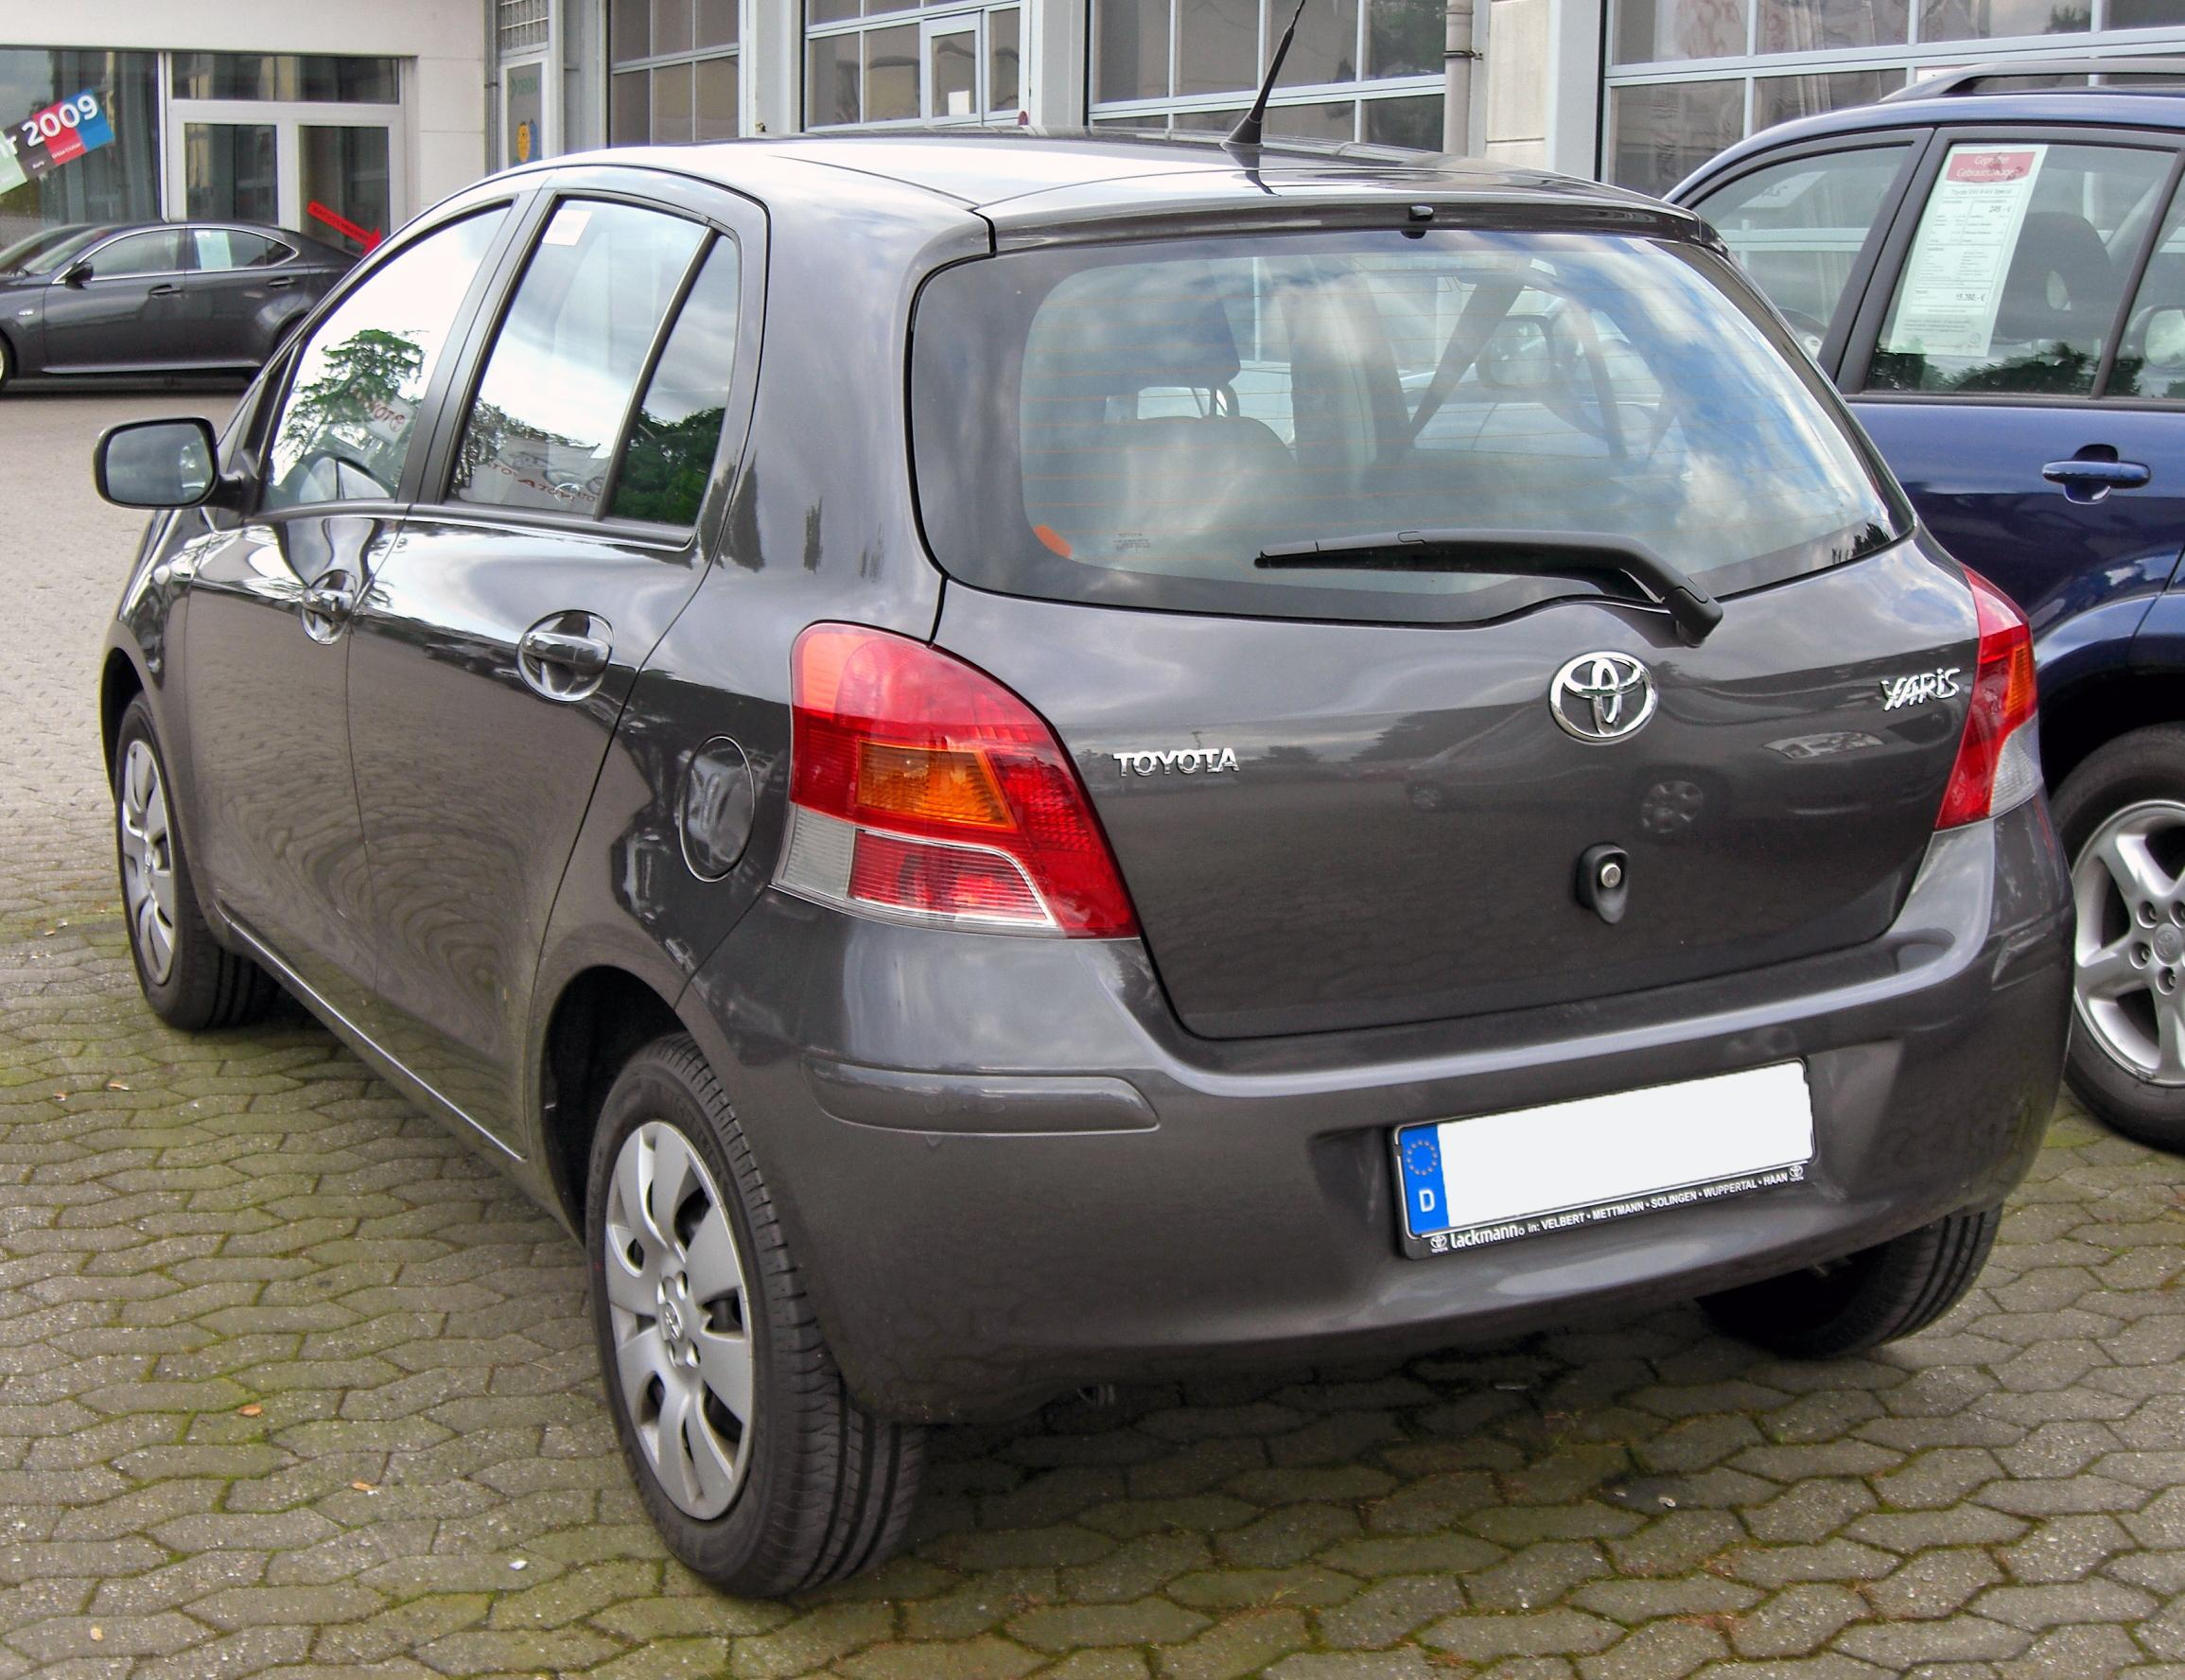 file toyota yaris ii facelift 20090517 rear jpg wikimedia commons. Black Bedroom Furniture Sets. Home Design Ideas